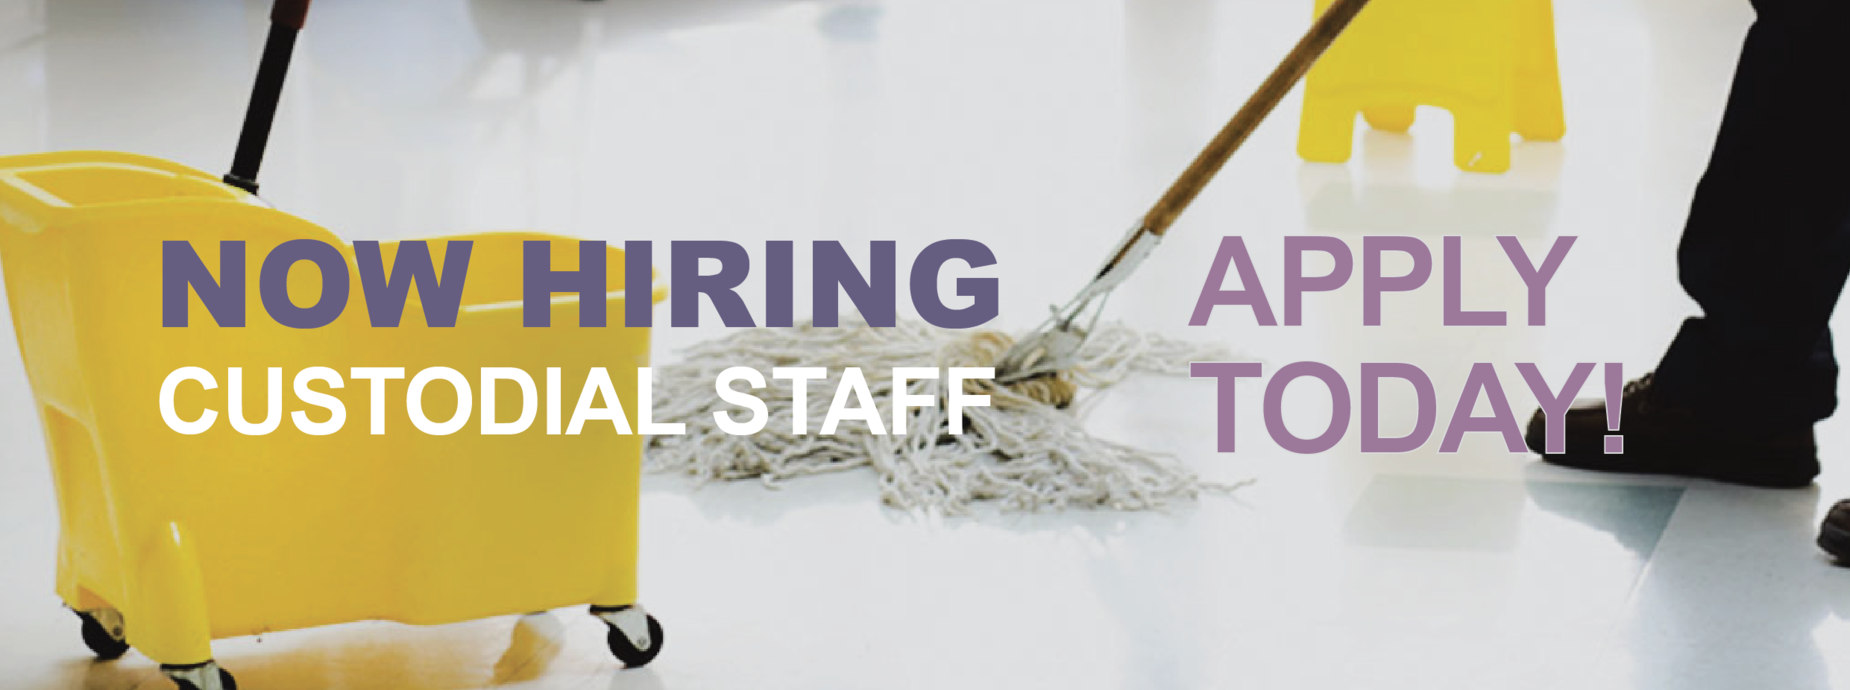 Now Hiring Custodial Staff! Apply Today!